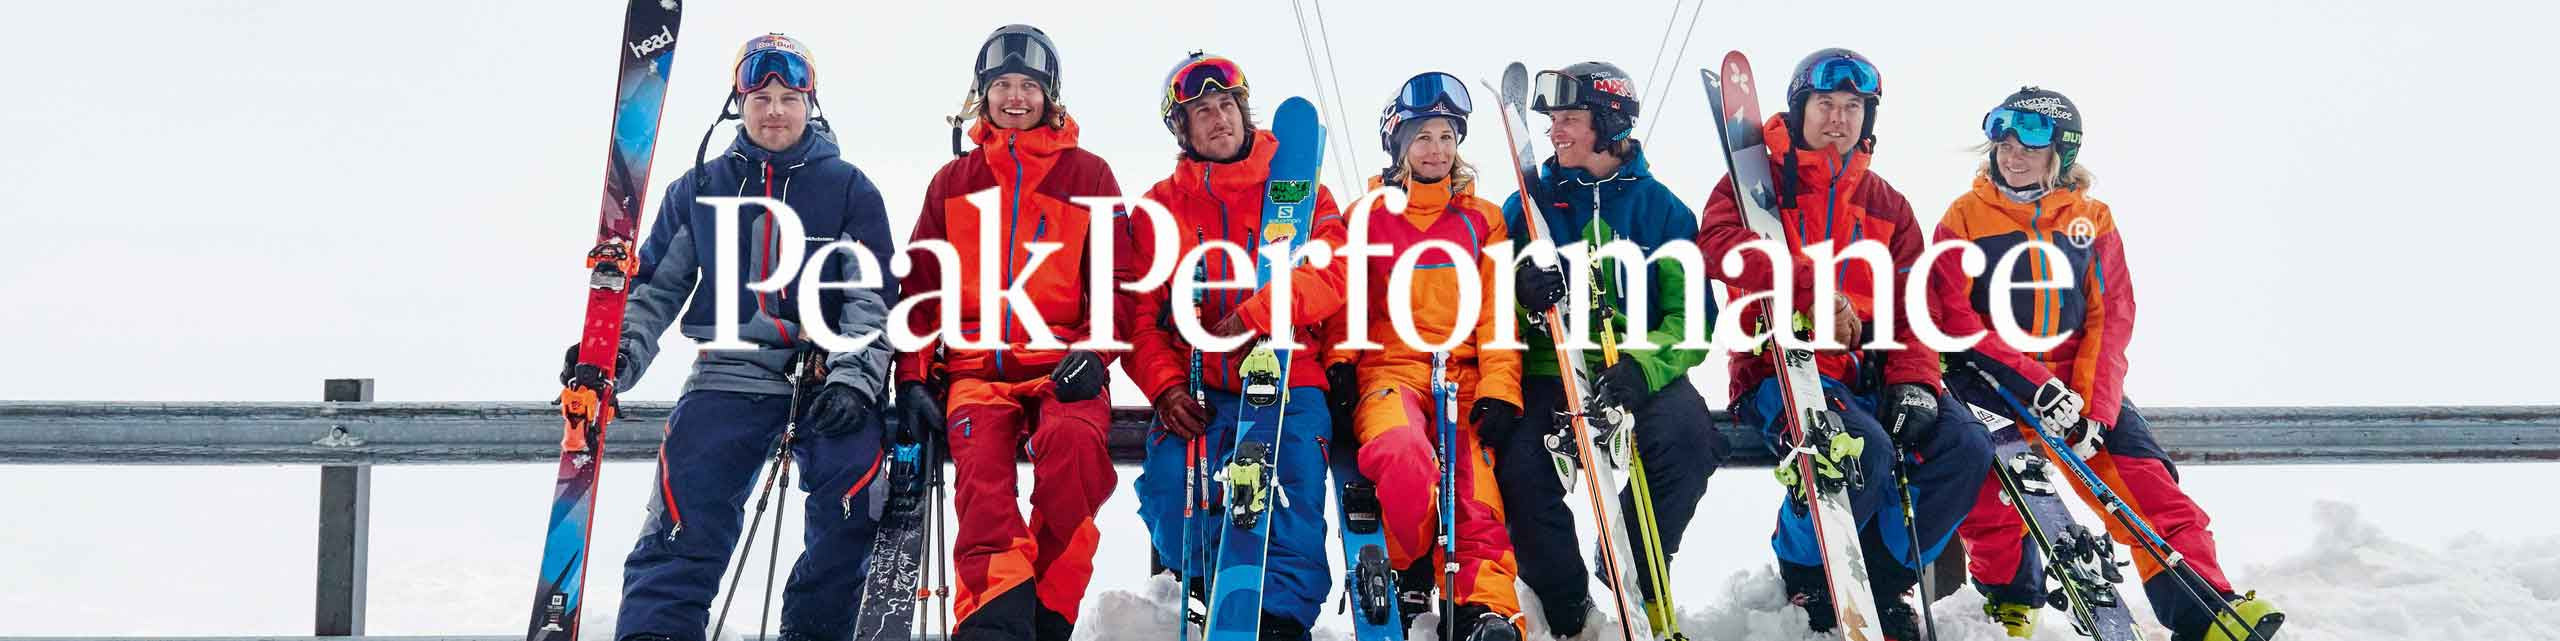 Peak Performance snow and active wear ski collection